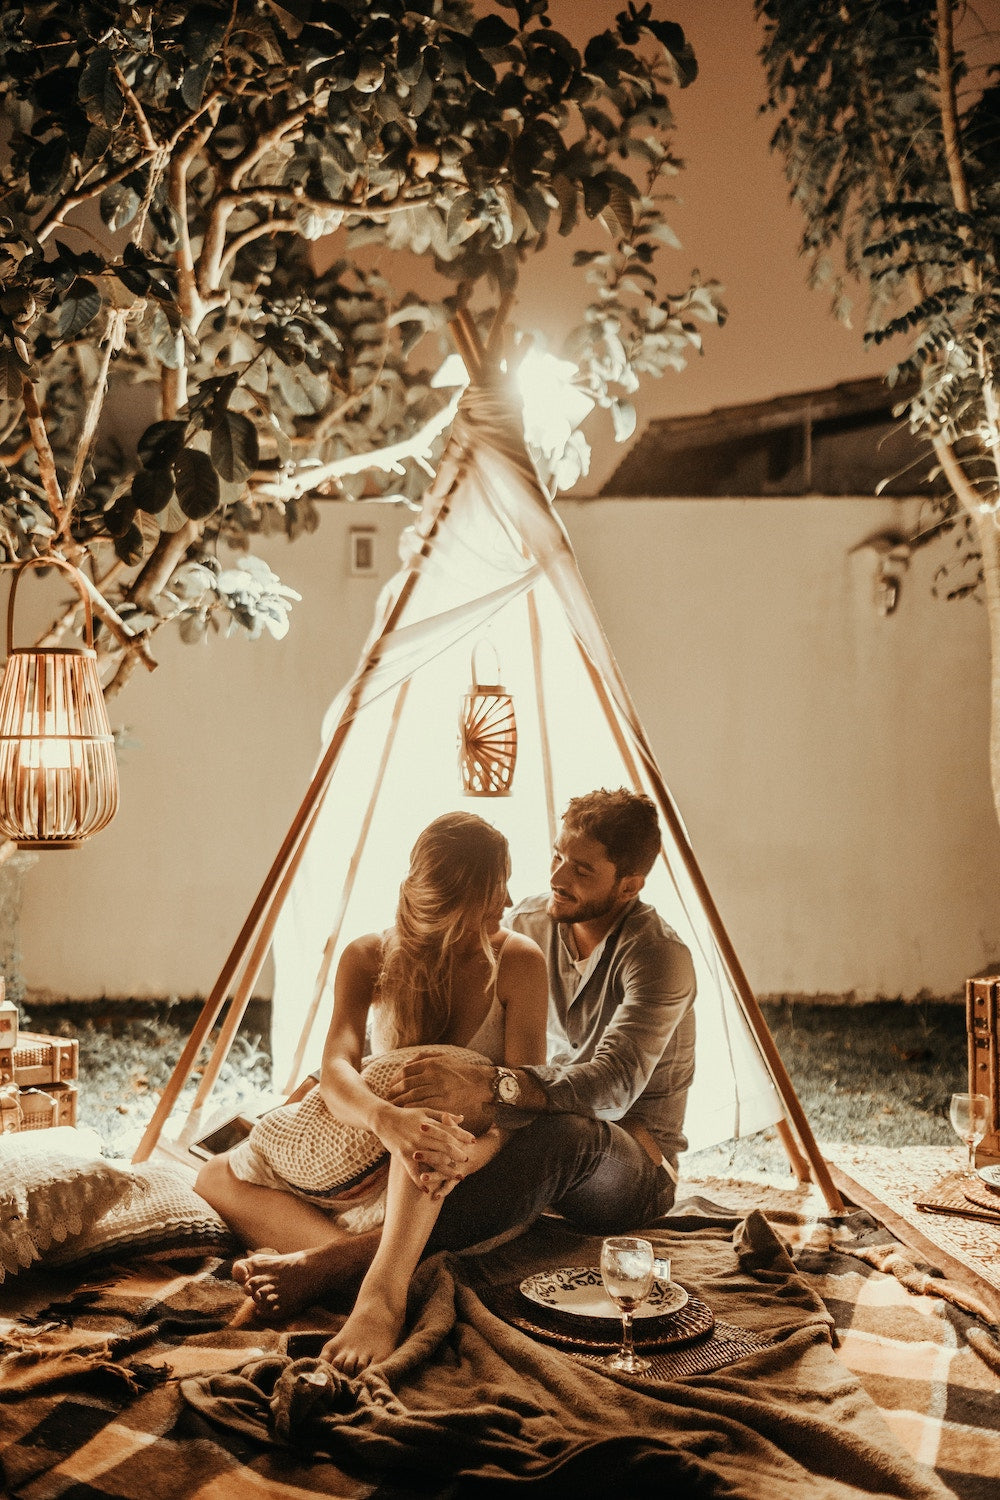 A couple shares an intimate moment under the lights | Talsam, Smart Jewelry